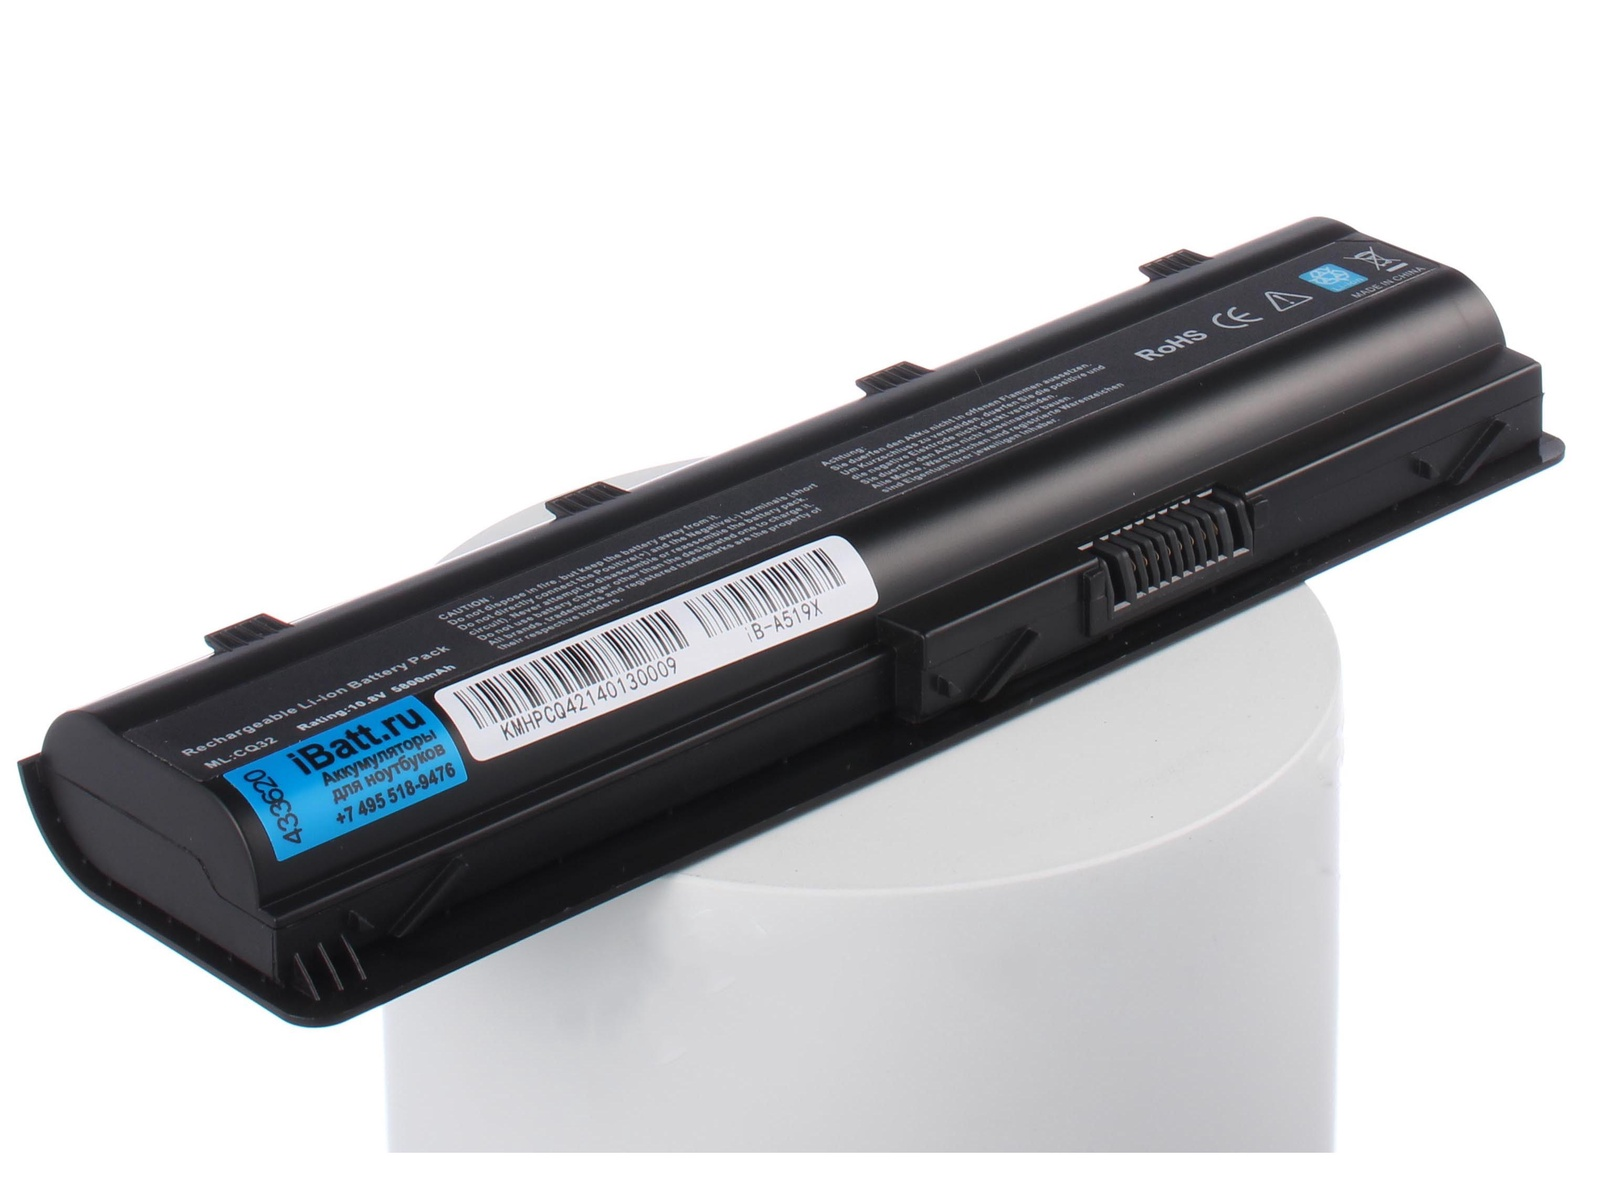 Аккумулятор для ноутбука iBatt для HP-Compaq Pavilion g7-1173dx, Pavilion g7-1260us, Pavilion g7-2277sr, Presario CQ56-101ER, Presario CQ57-401ER, Presario CQ57-411ER, Presario CQ57-438ER, 650 (B6N64EA), 650 B6N64EA, CQ58-281SR working perfectly 646177 001 motherboard for hp 2000 compaq presario cq57 cq43 notebook pc mainboard